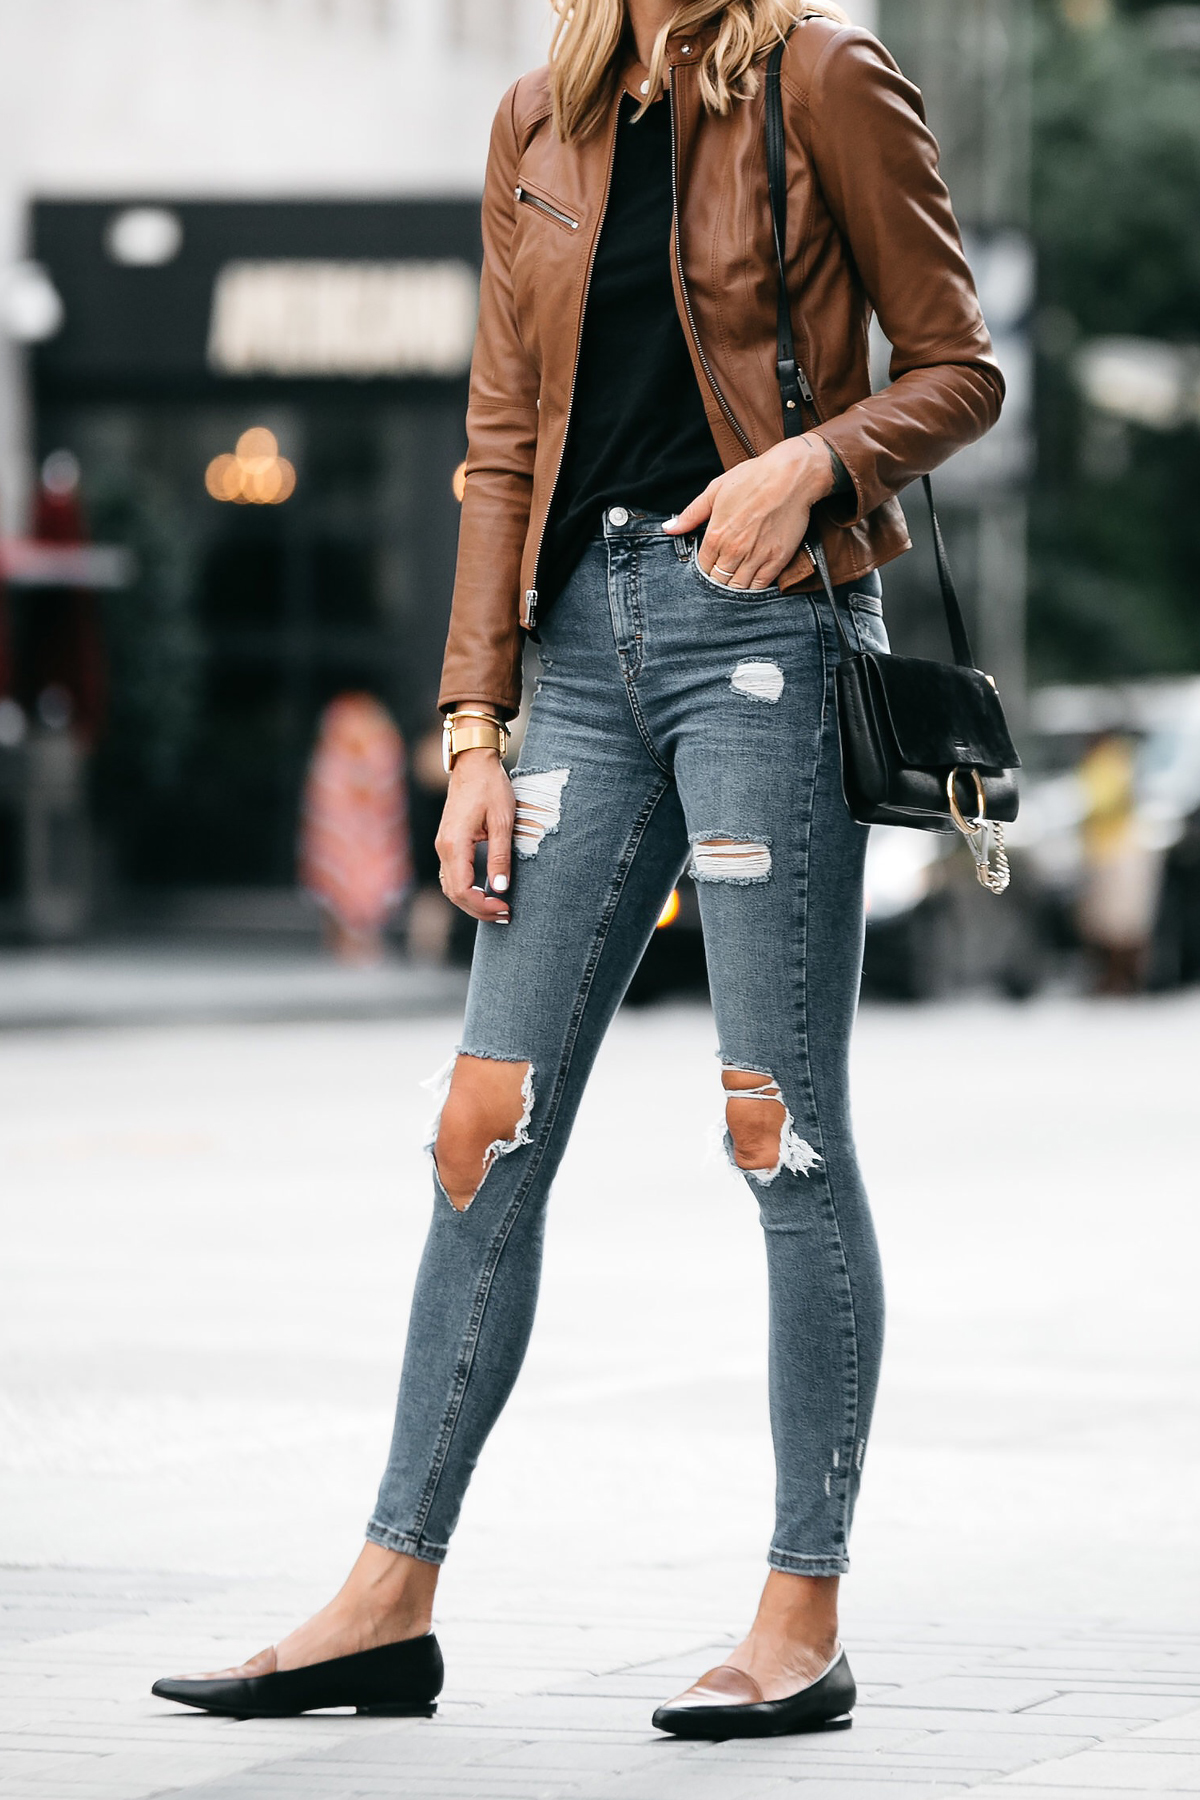 Tan Leather Jacket Black Tshirt Denim Ripped Skinny Jeans Outfit Black Tan Loafers Chloe Faye Handbag Fashion Jackson Dallas Blogger Fashion Blogger Street Style